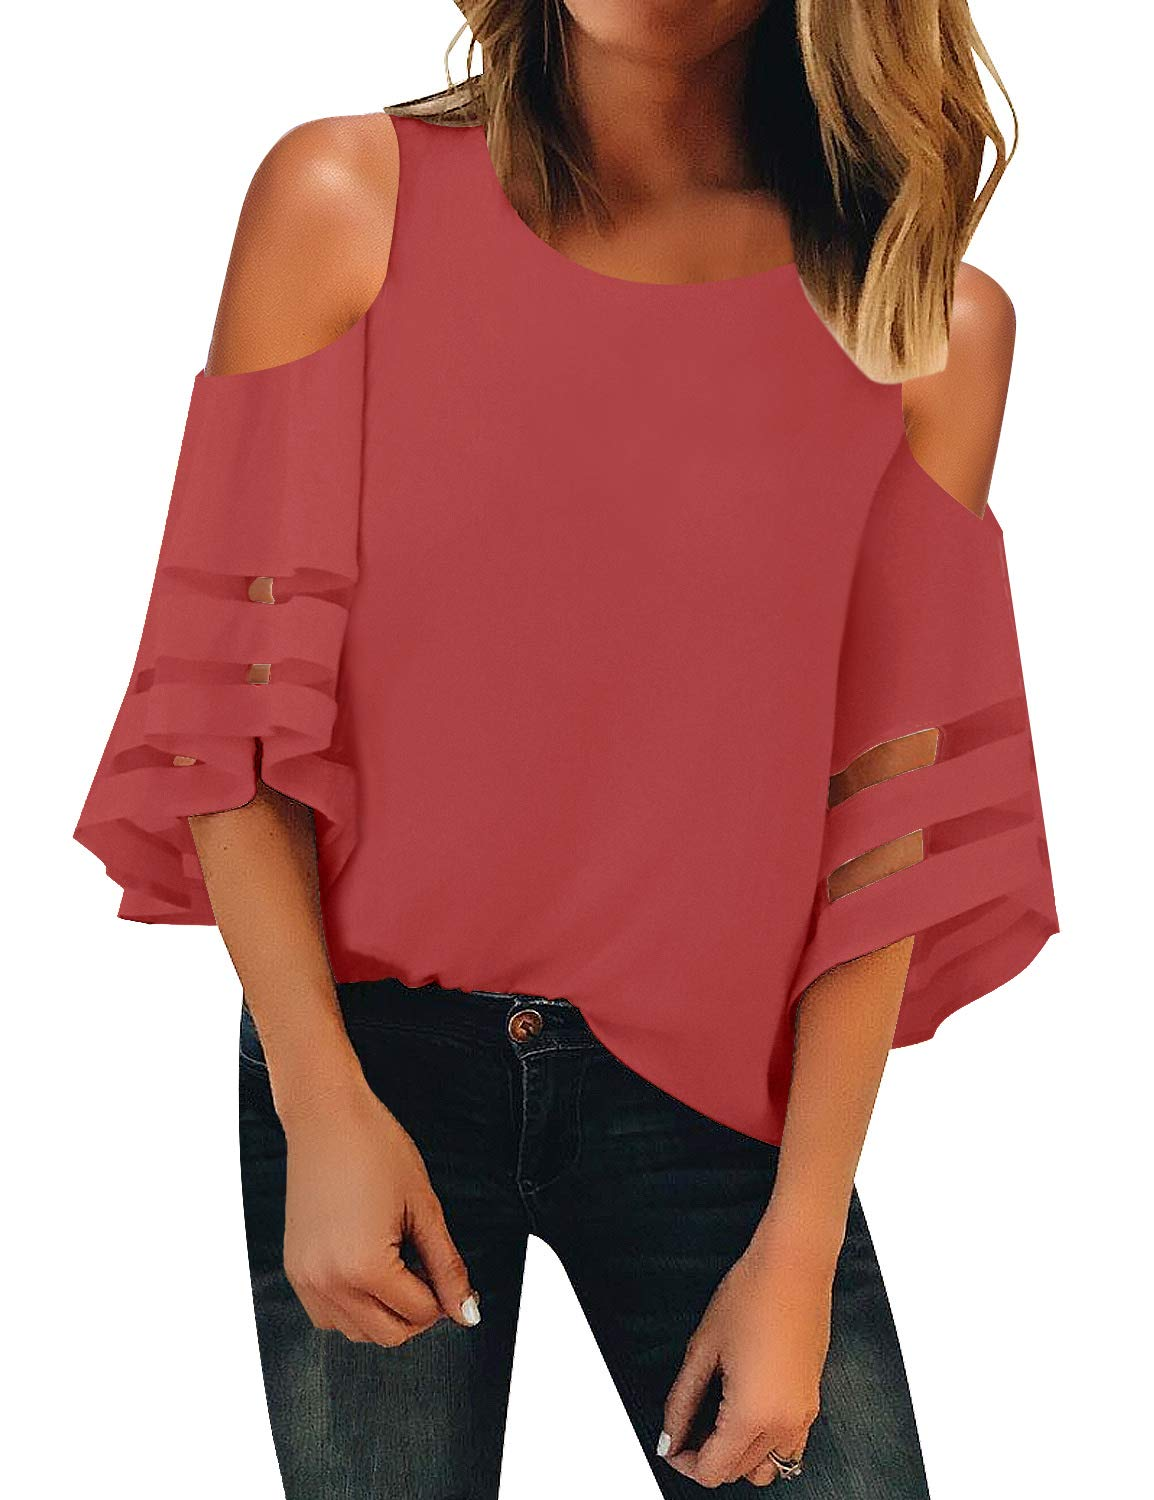 LookbookStore Women's Cold Shoulder Loose Shirt Tops 3/4 Bell Mesh Sleeve Blouse